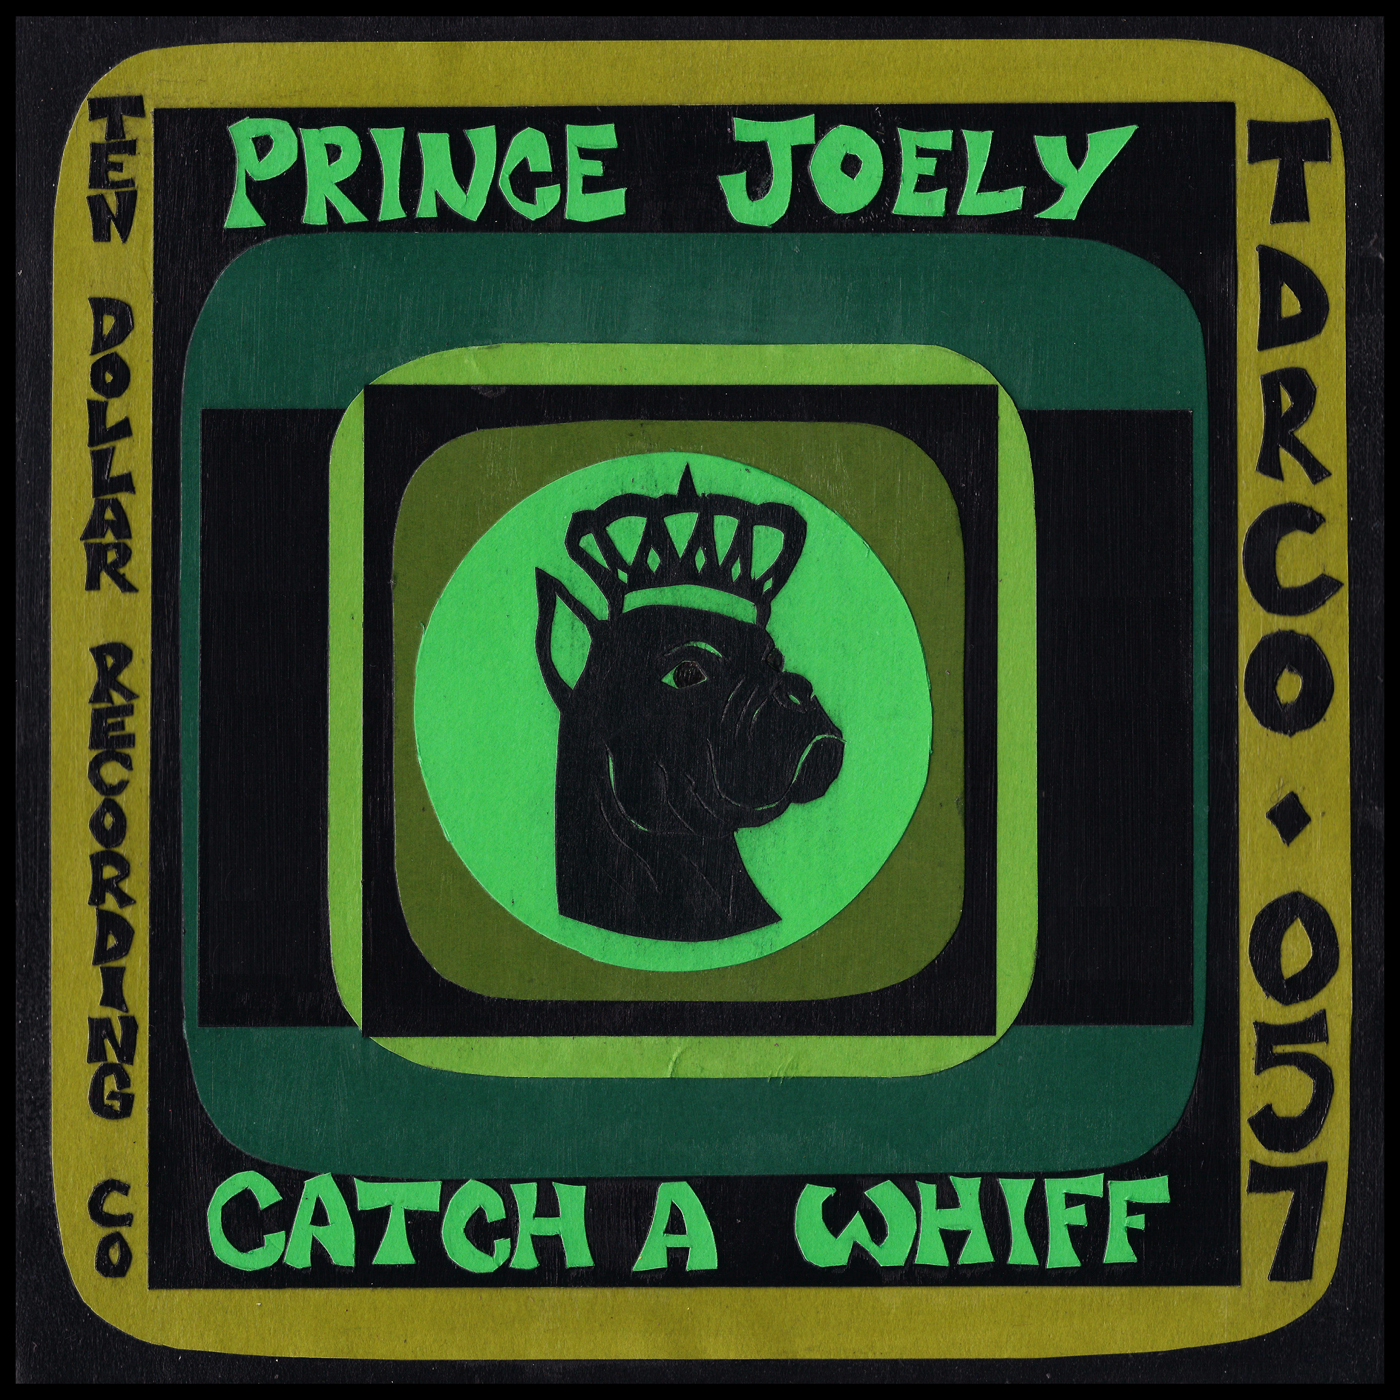 Prince Joely - Catch a Whiff (Single)